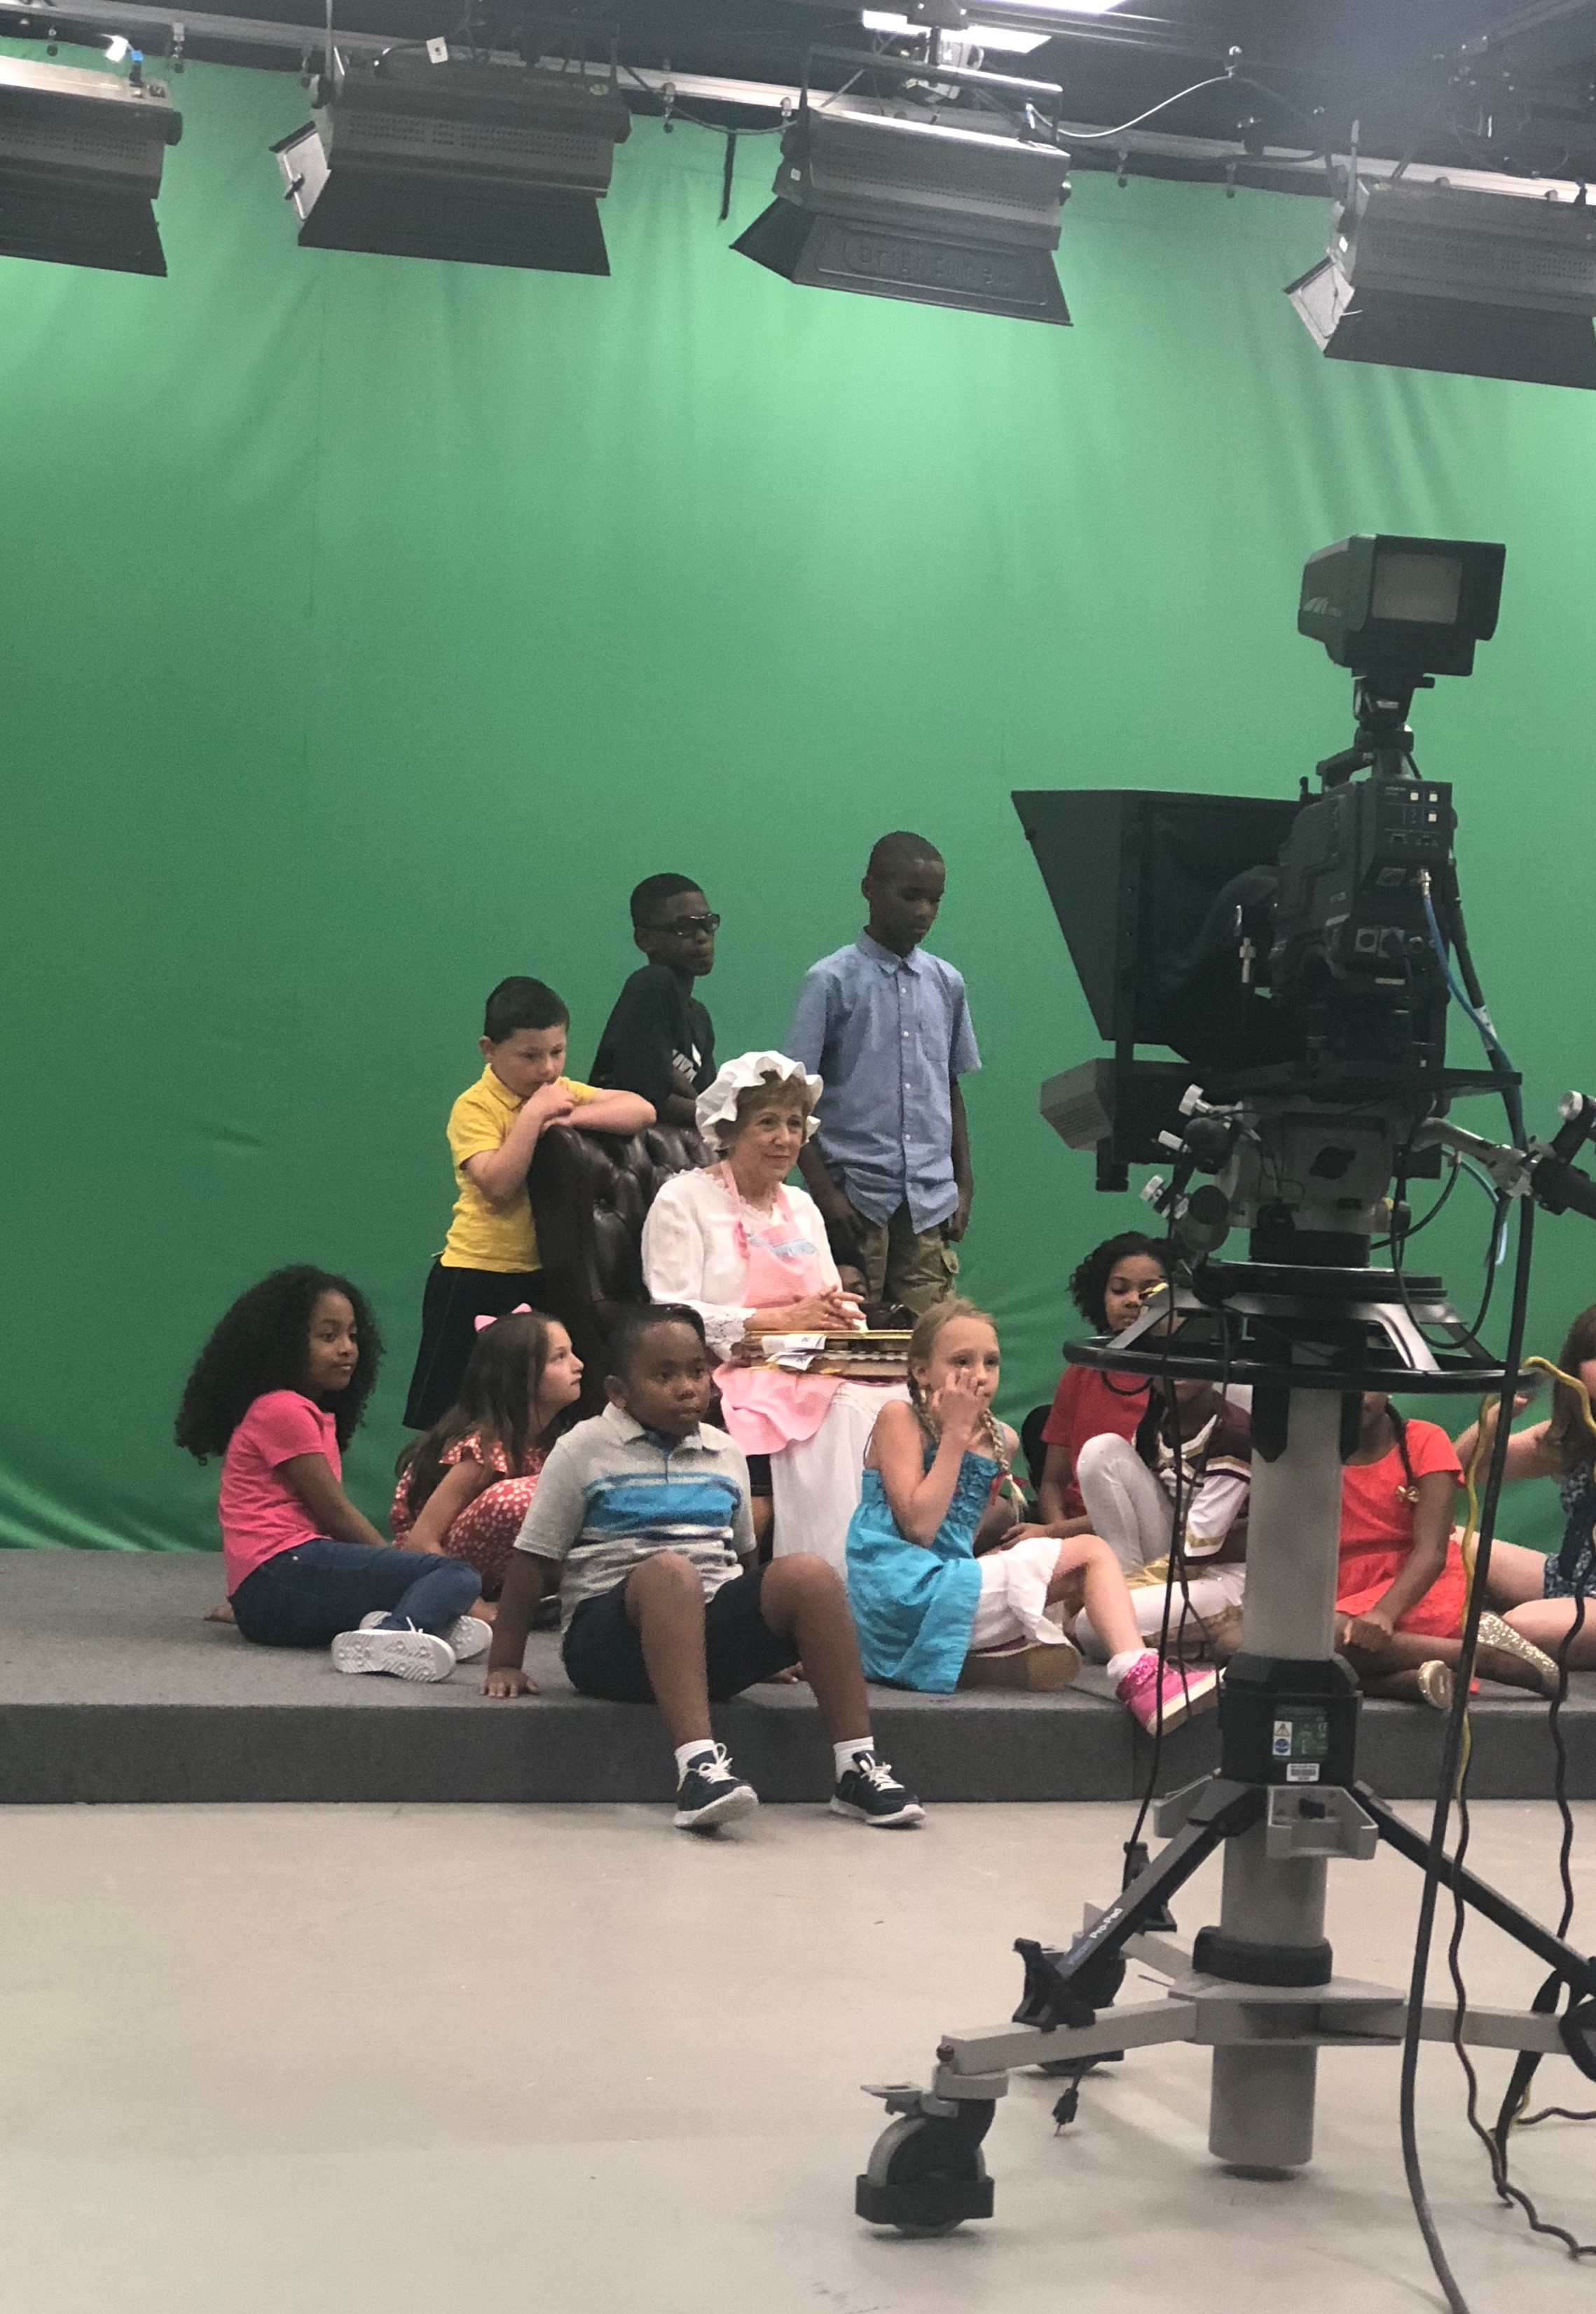 Filming a local children's television show